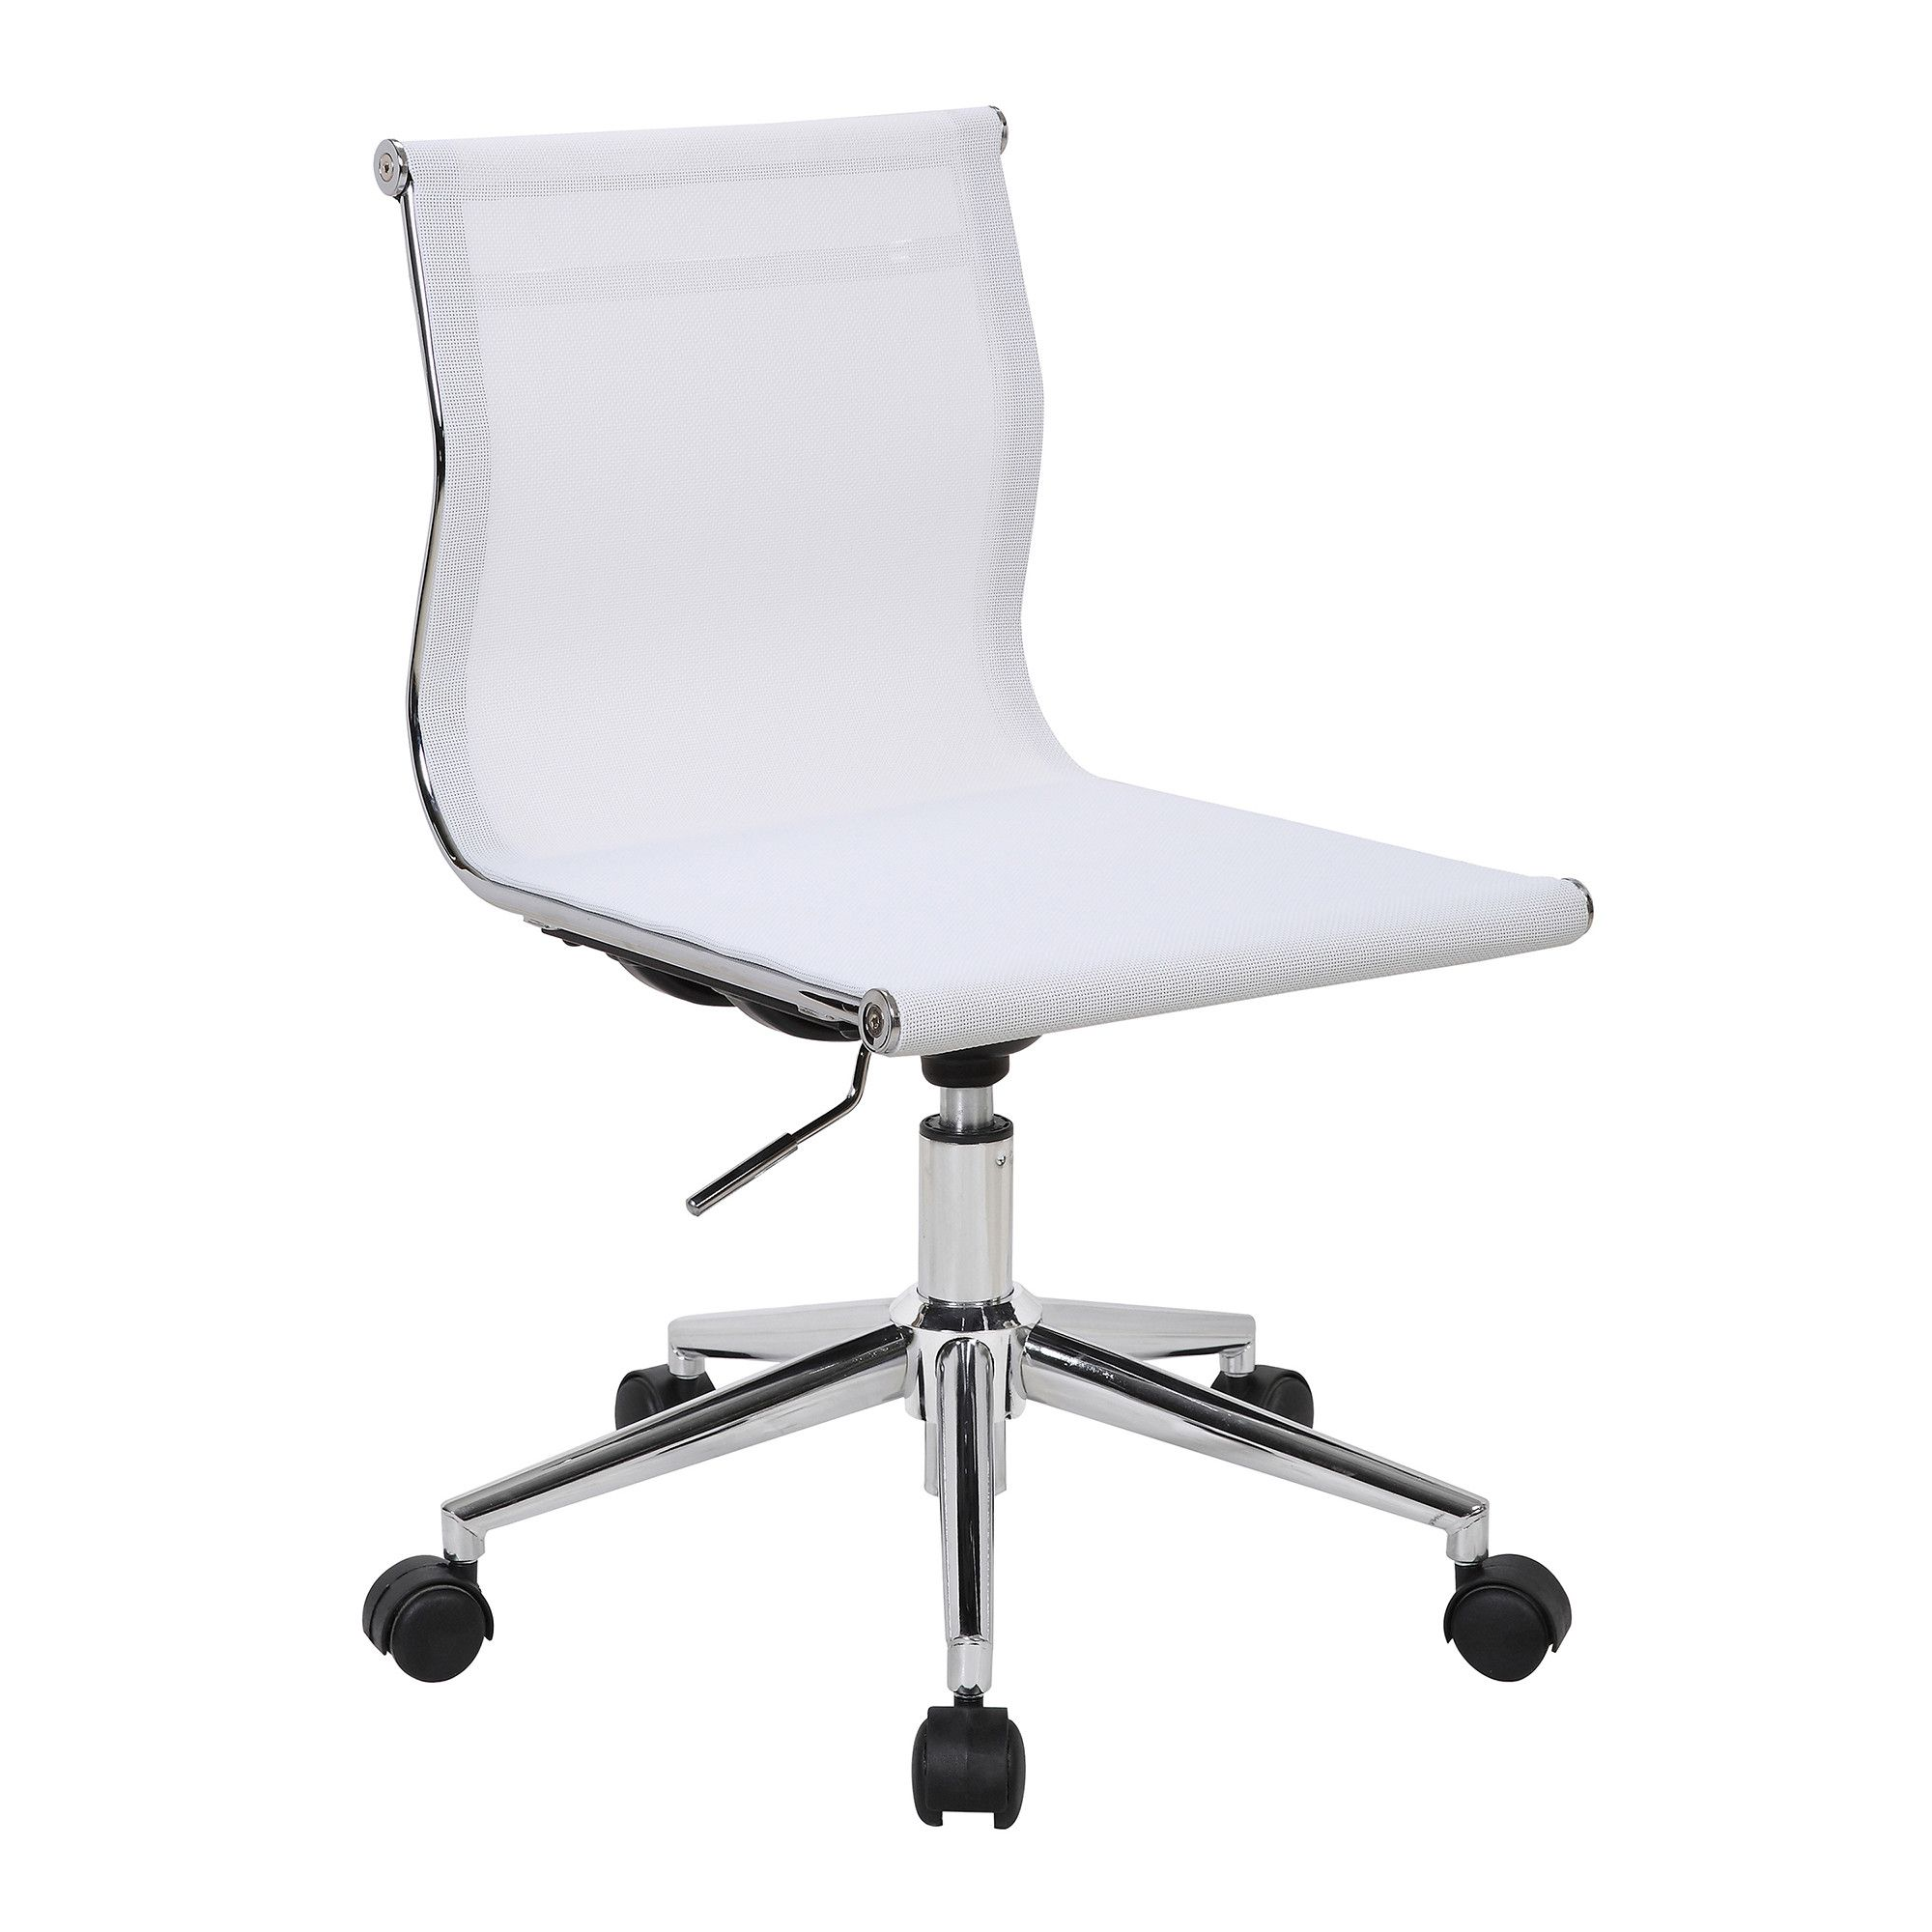 Mirage Contemporary Task Chair In Chrome & White